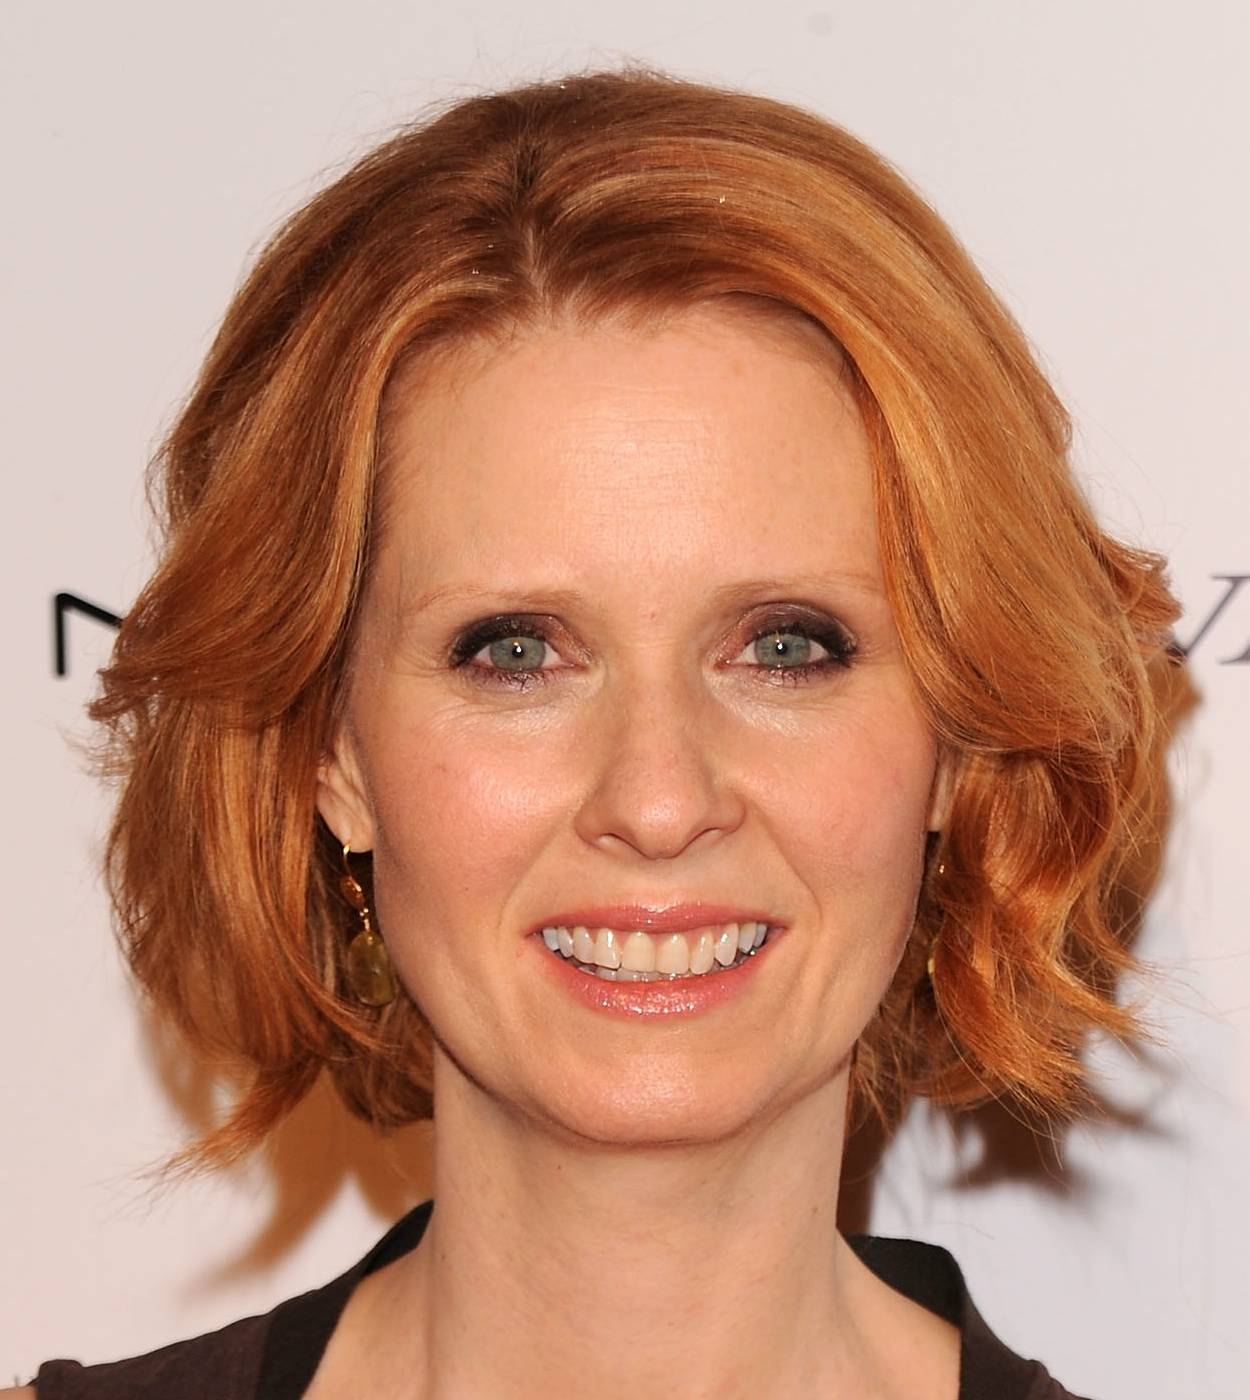 Cynthia Nixon Says Homosexuality is a Choice in New York Times Interview